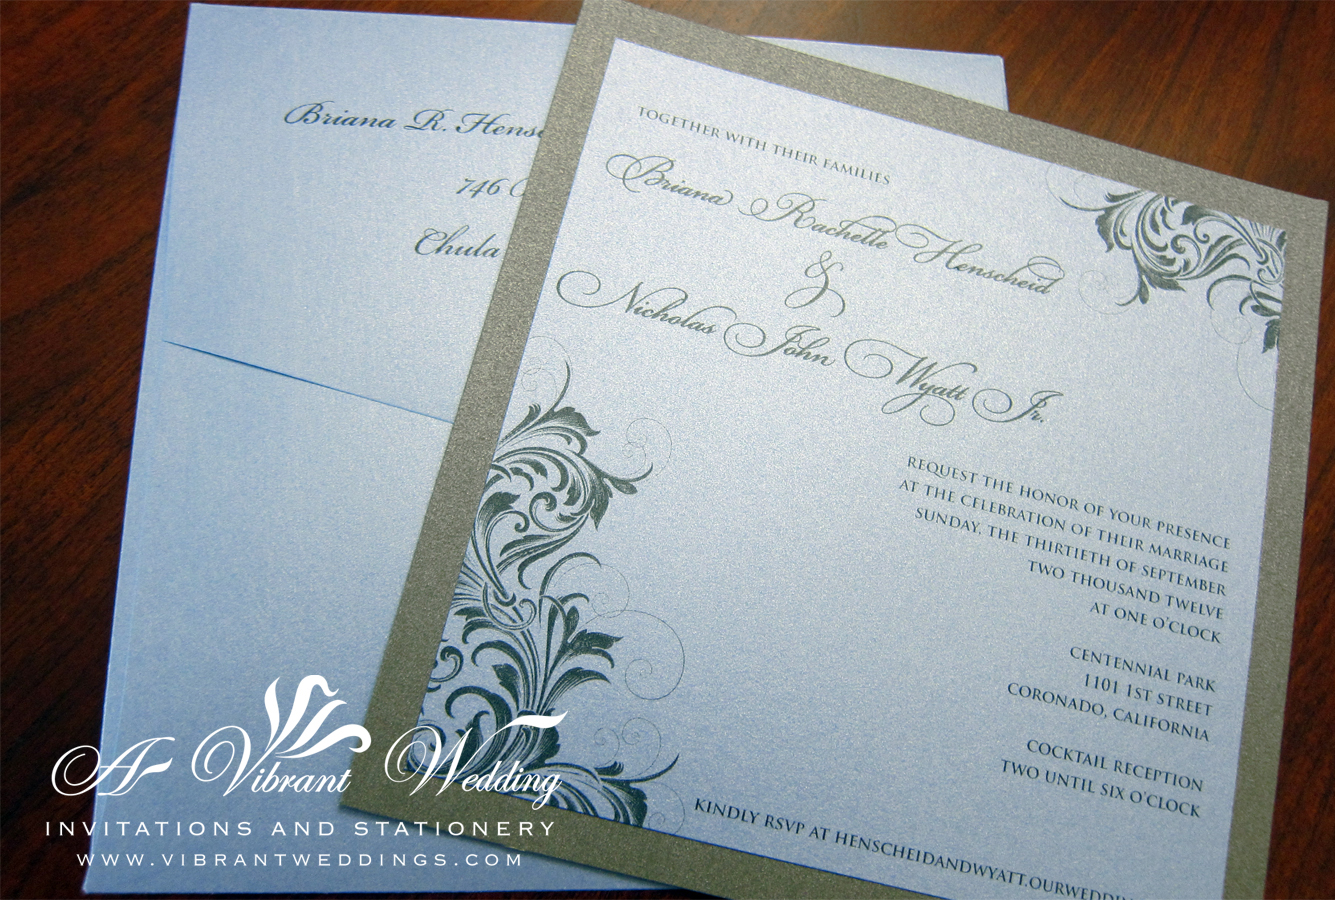 Slate Blue Wedding Invitation – A Vibrant Wedding